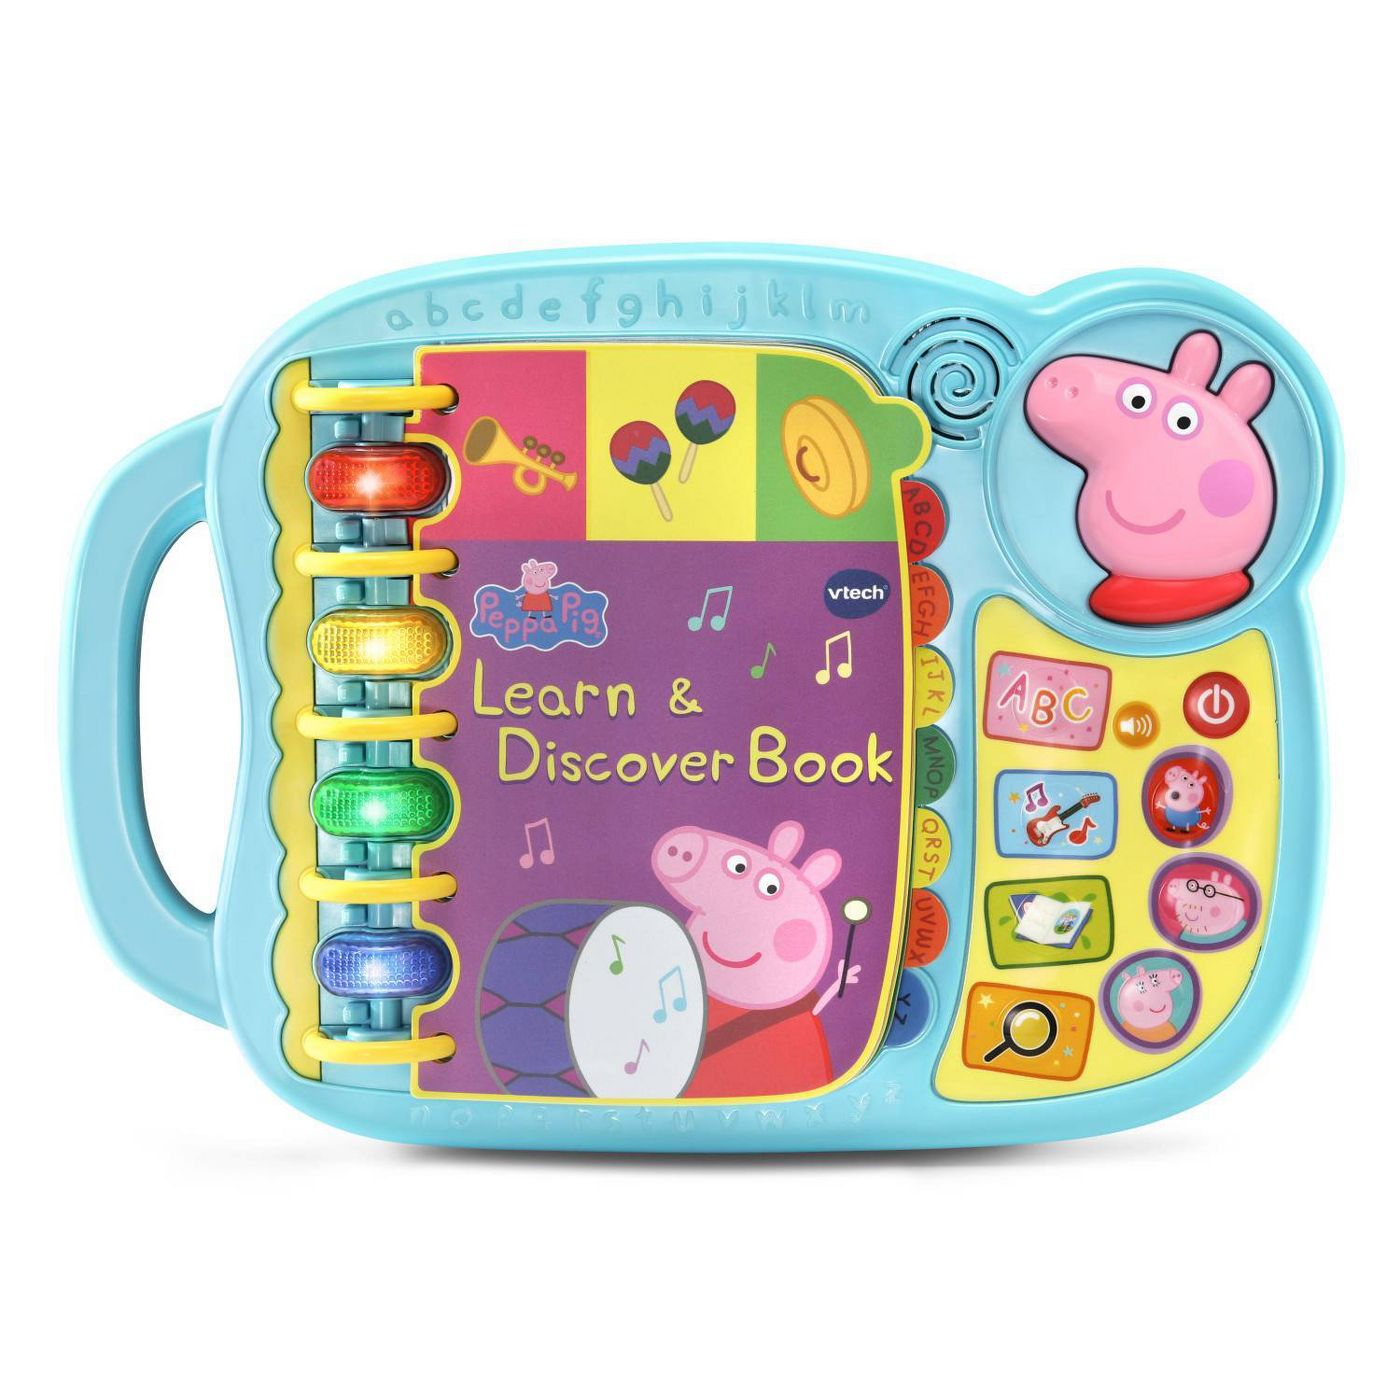 VTech Peppa Pig Learn & Discover Book - image 1 of 5